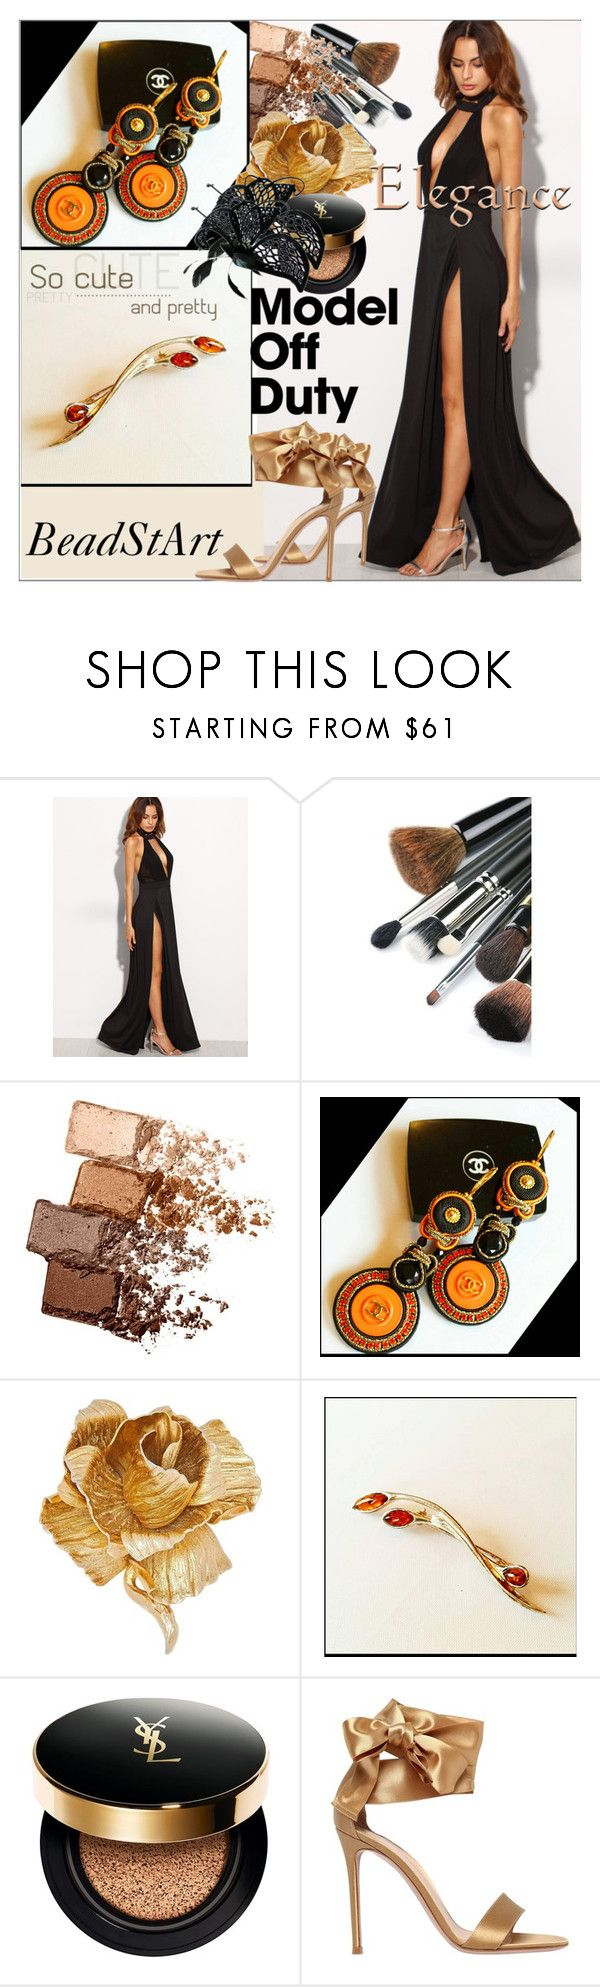 """""""BeadStArt(the best shop)#11"""" by sabahetasaric ❤ liked on Polyvore featuring Maybelline, Chanel, Christian Dior, Yves Saint Laurent, Gianvito Rossi and modern"""